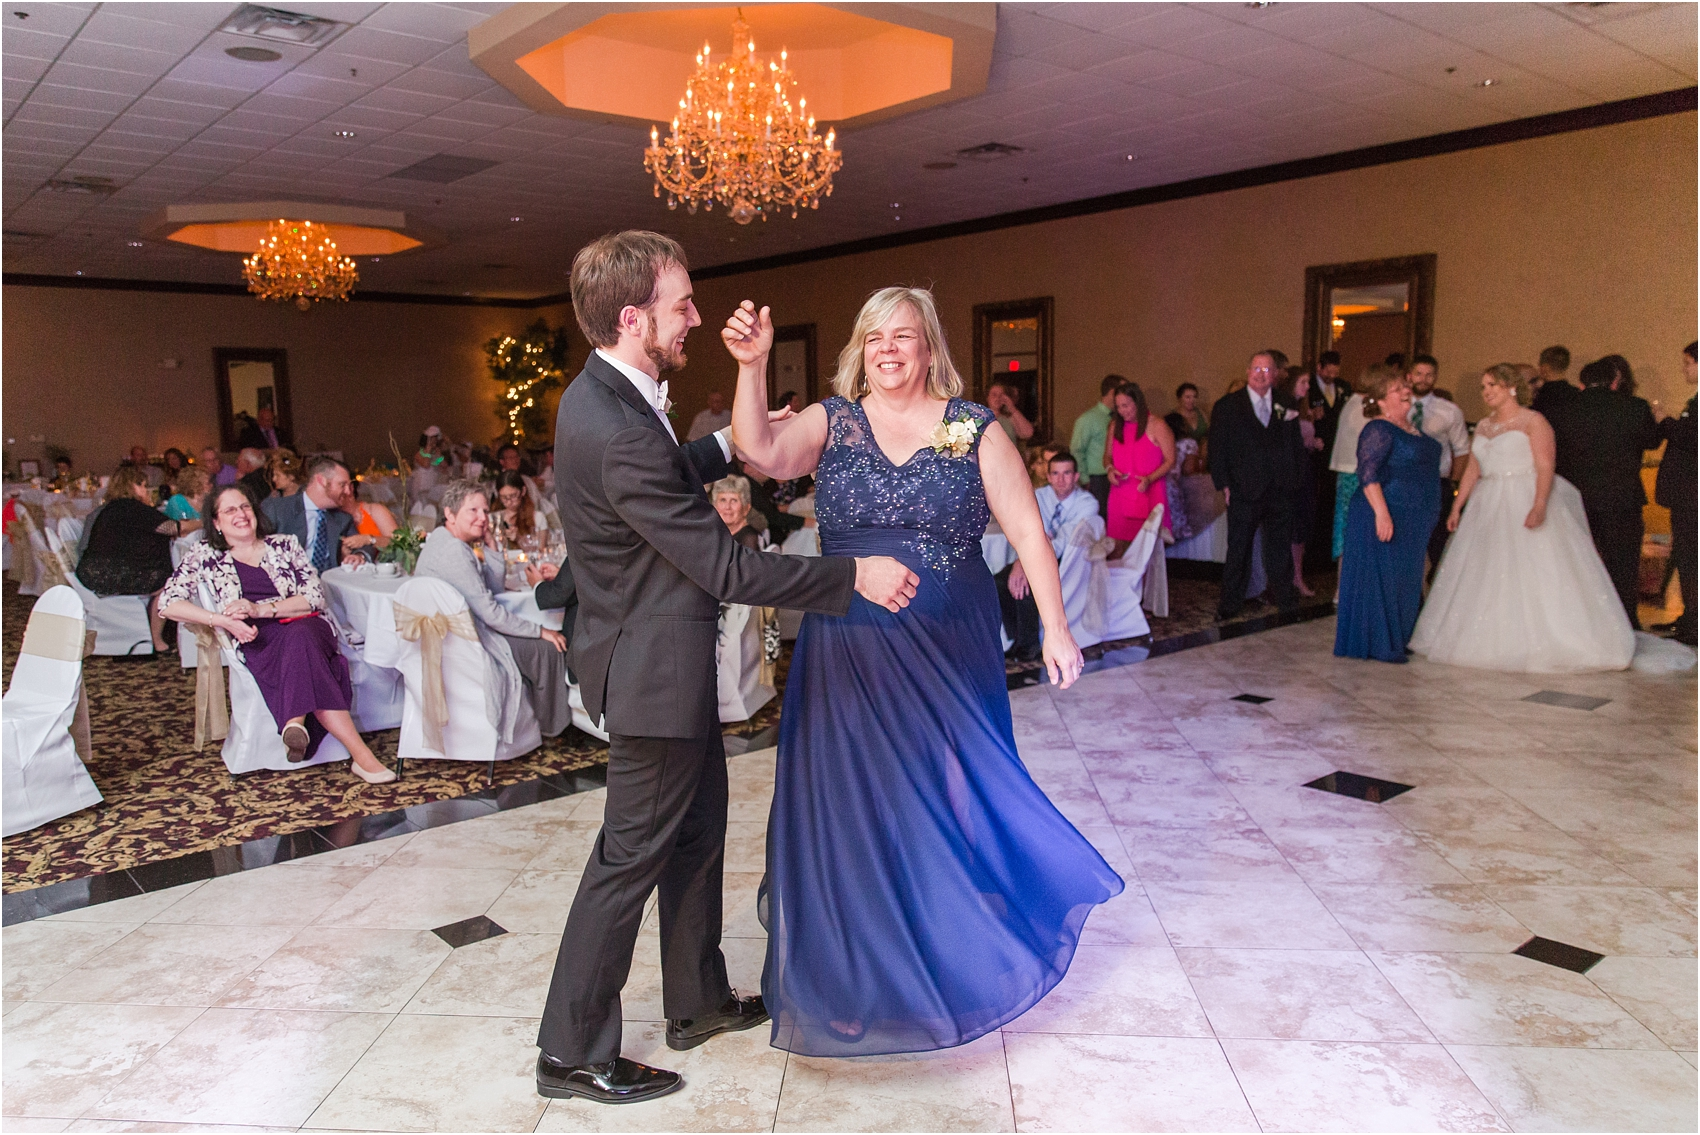 lord-of-the-rings-inspired-wedding-photos-at-crystal-gardens-in-howell-mi-by-courtney-carolyn-photography_0088.jpg